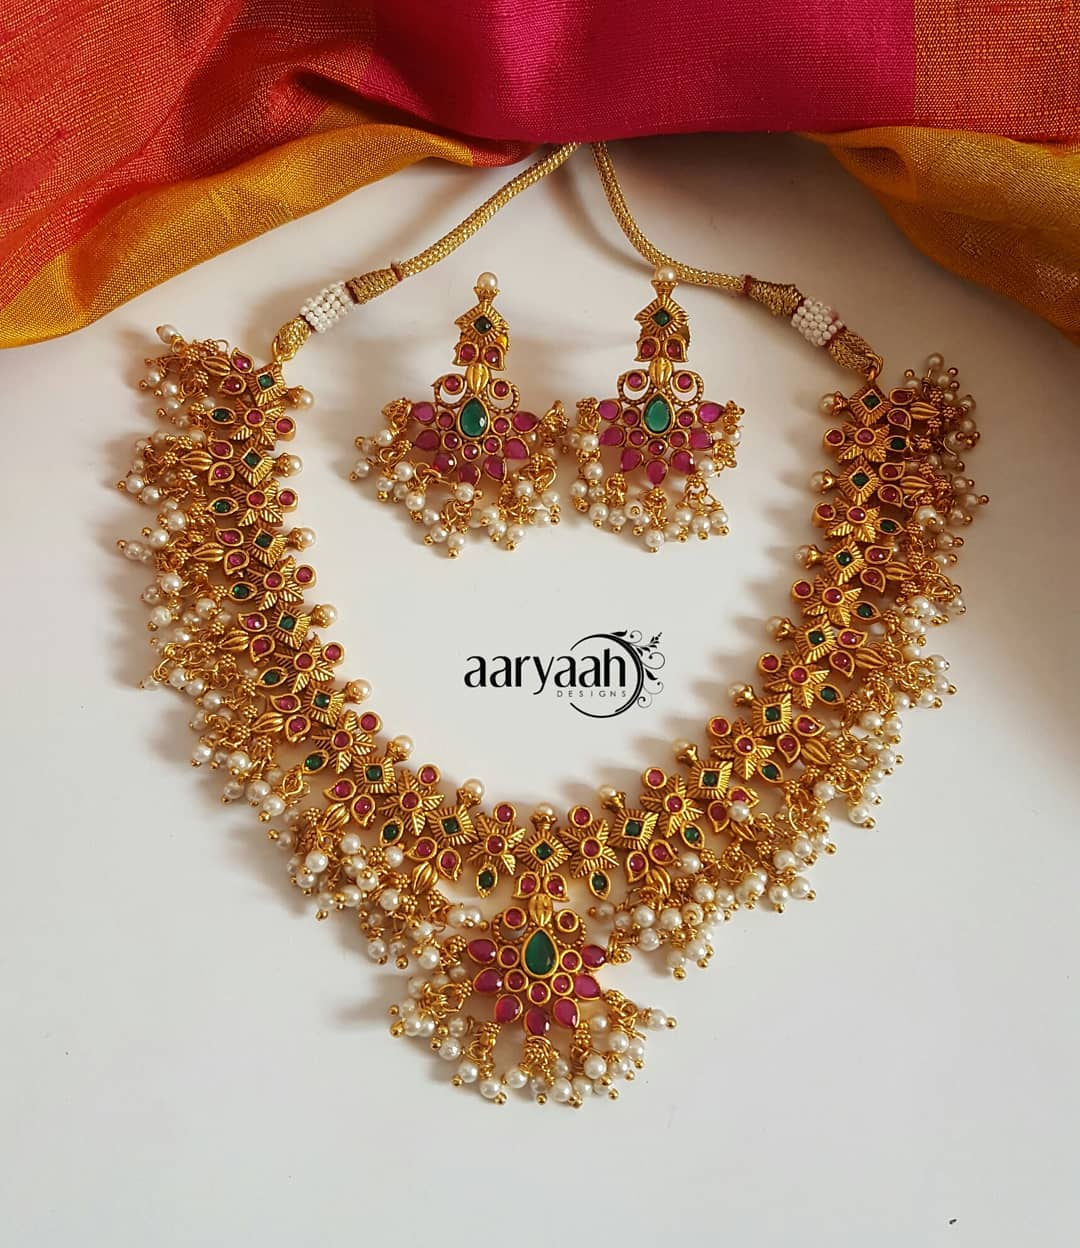 783d3c5e4c082 3 Brands To Shop South Indian Imitation Jewellery Sets